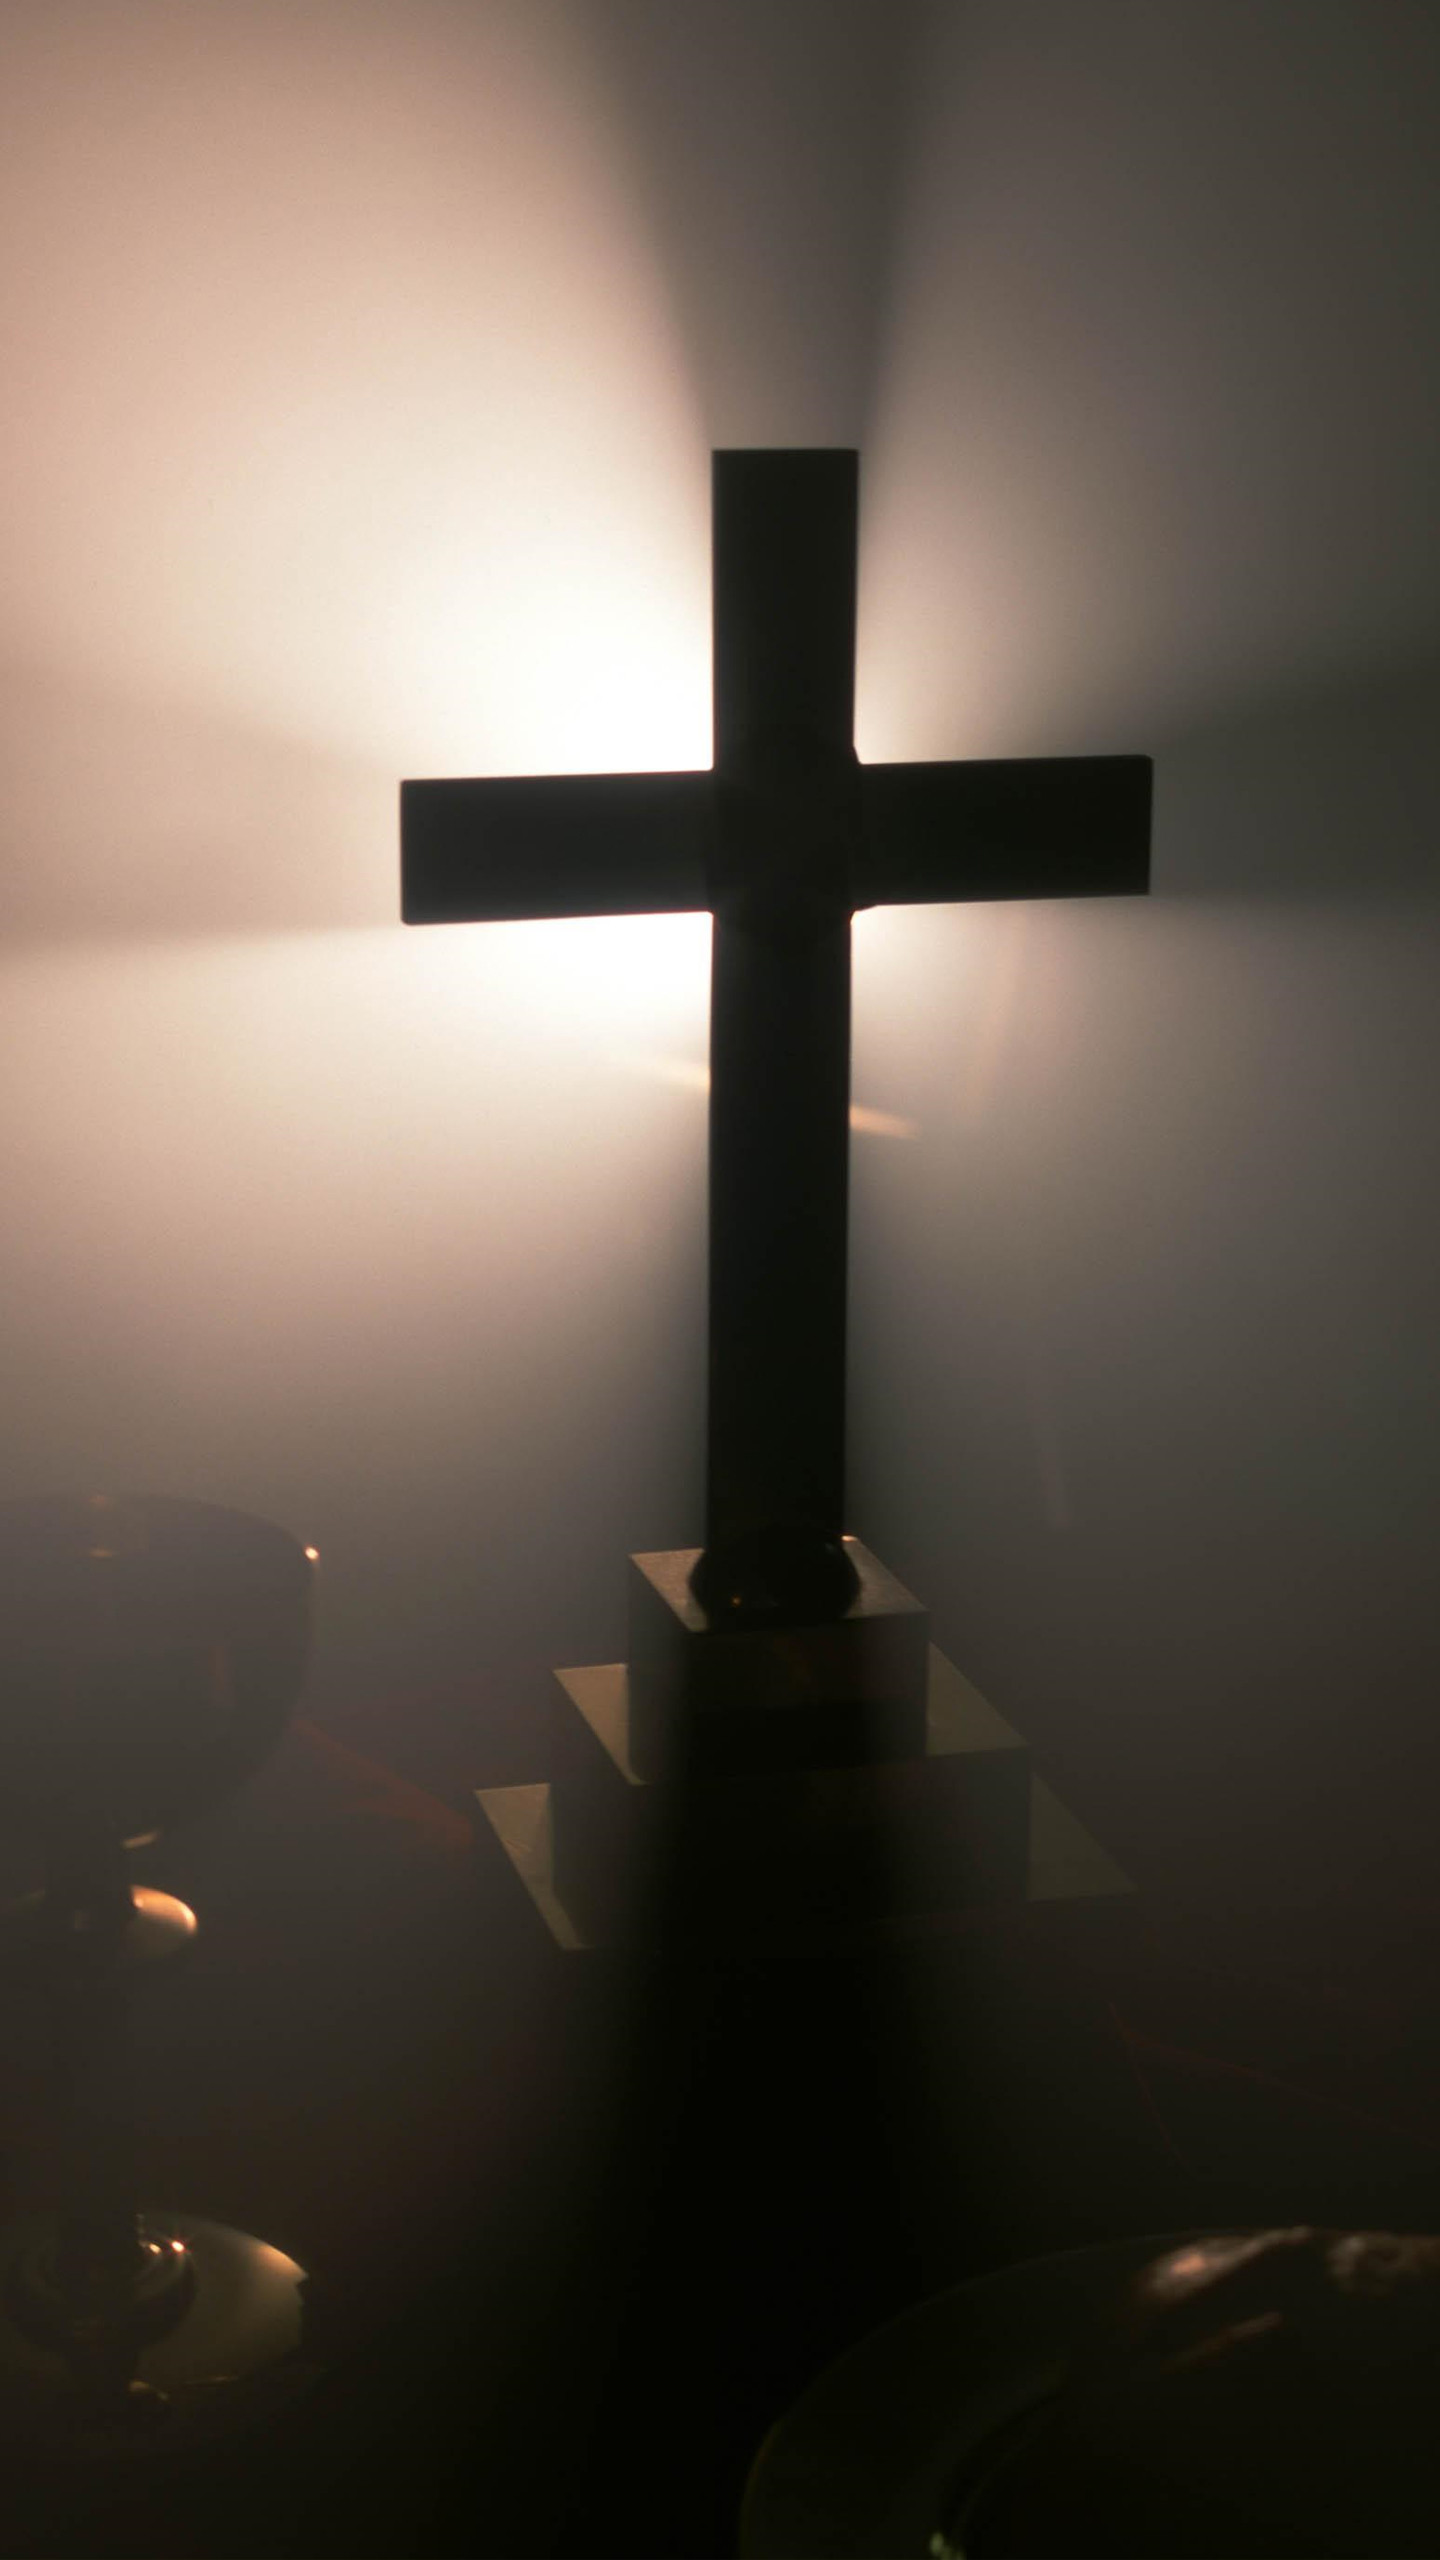 1440x2560 Cross In The Fog Wallpaper